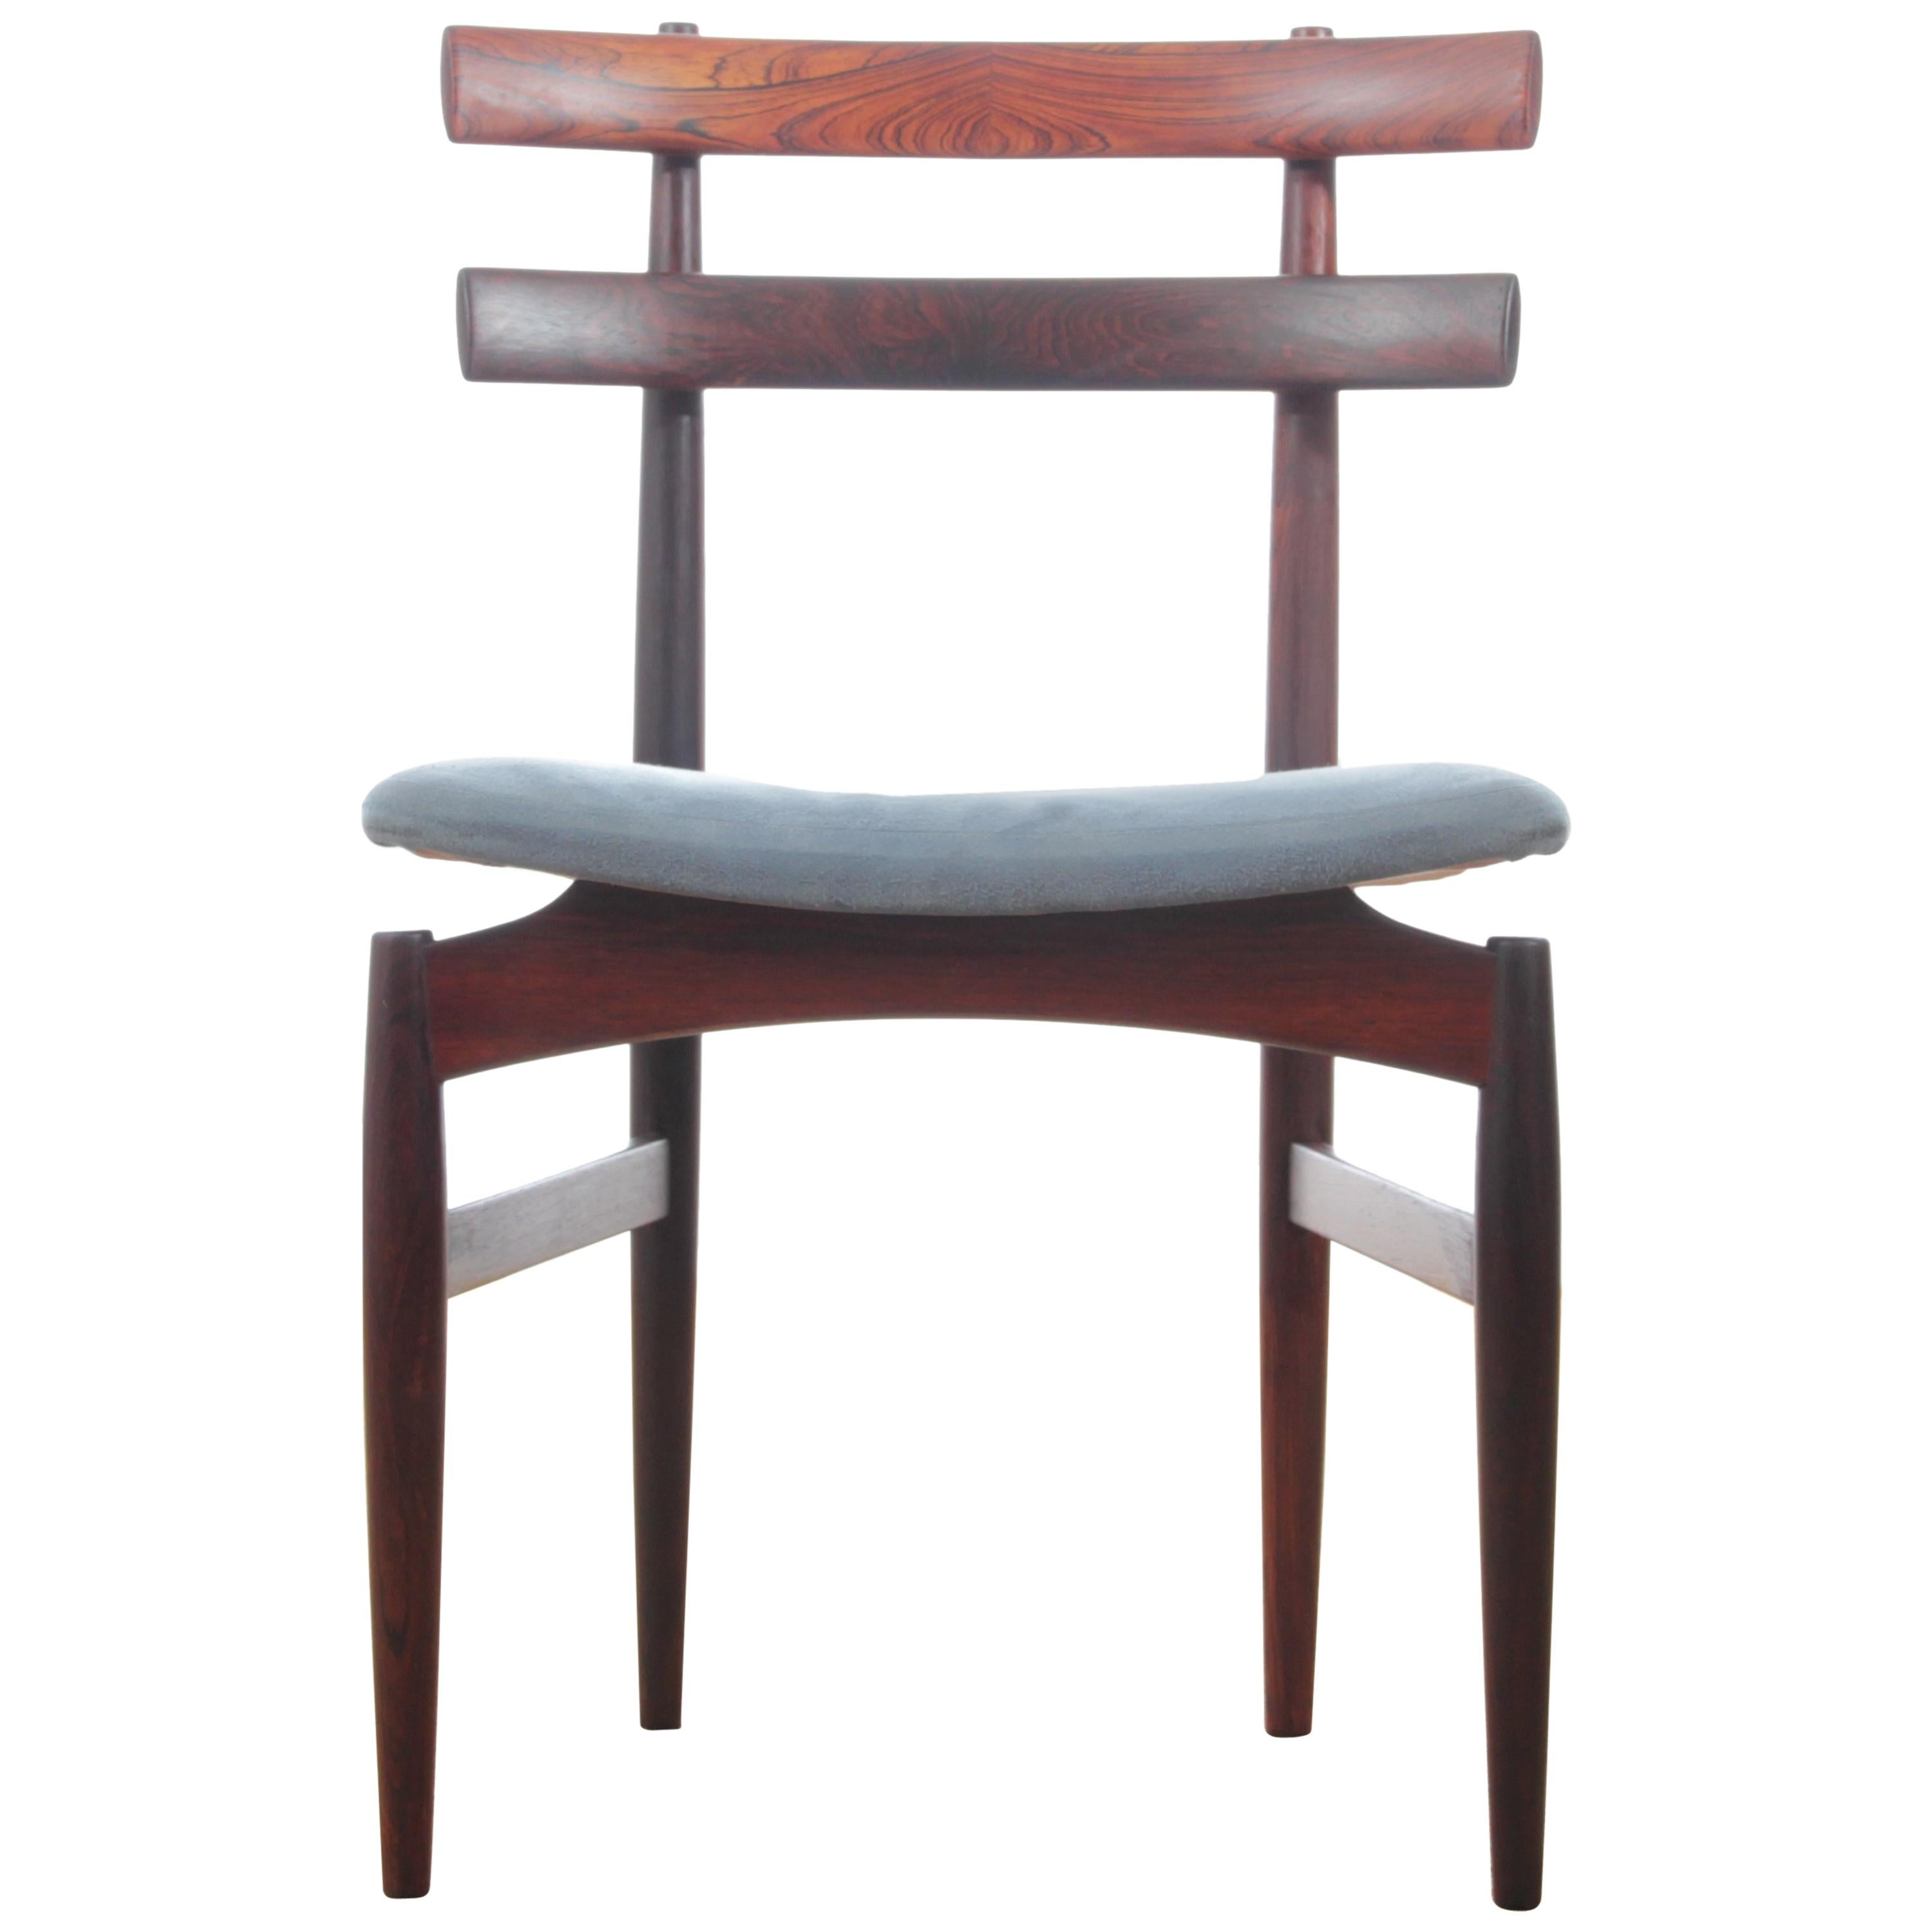 Mid-Century Modern Danish Set of Six Chairs in Rosewood by Poul Hundevad